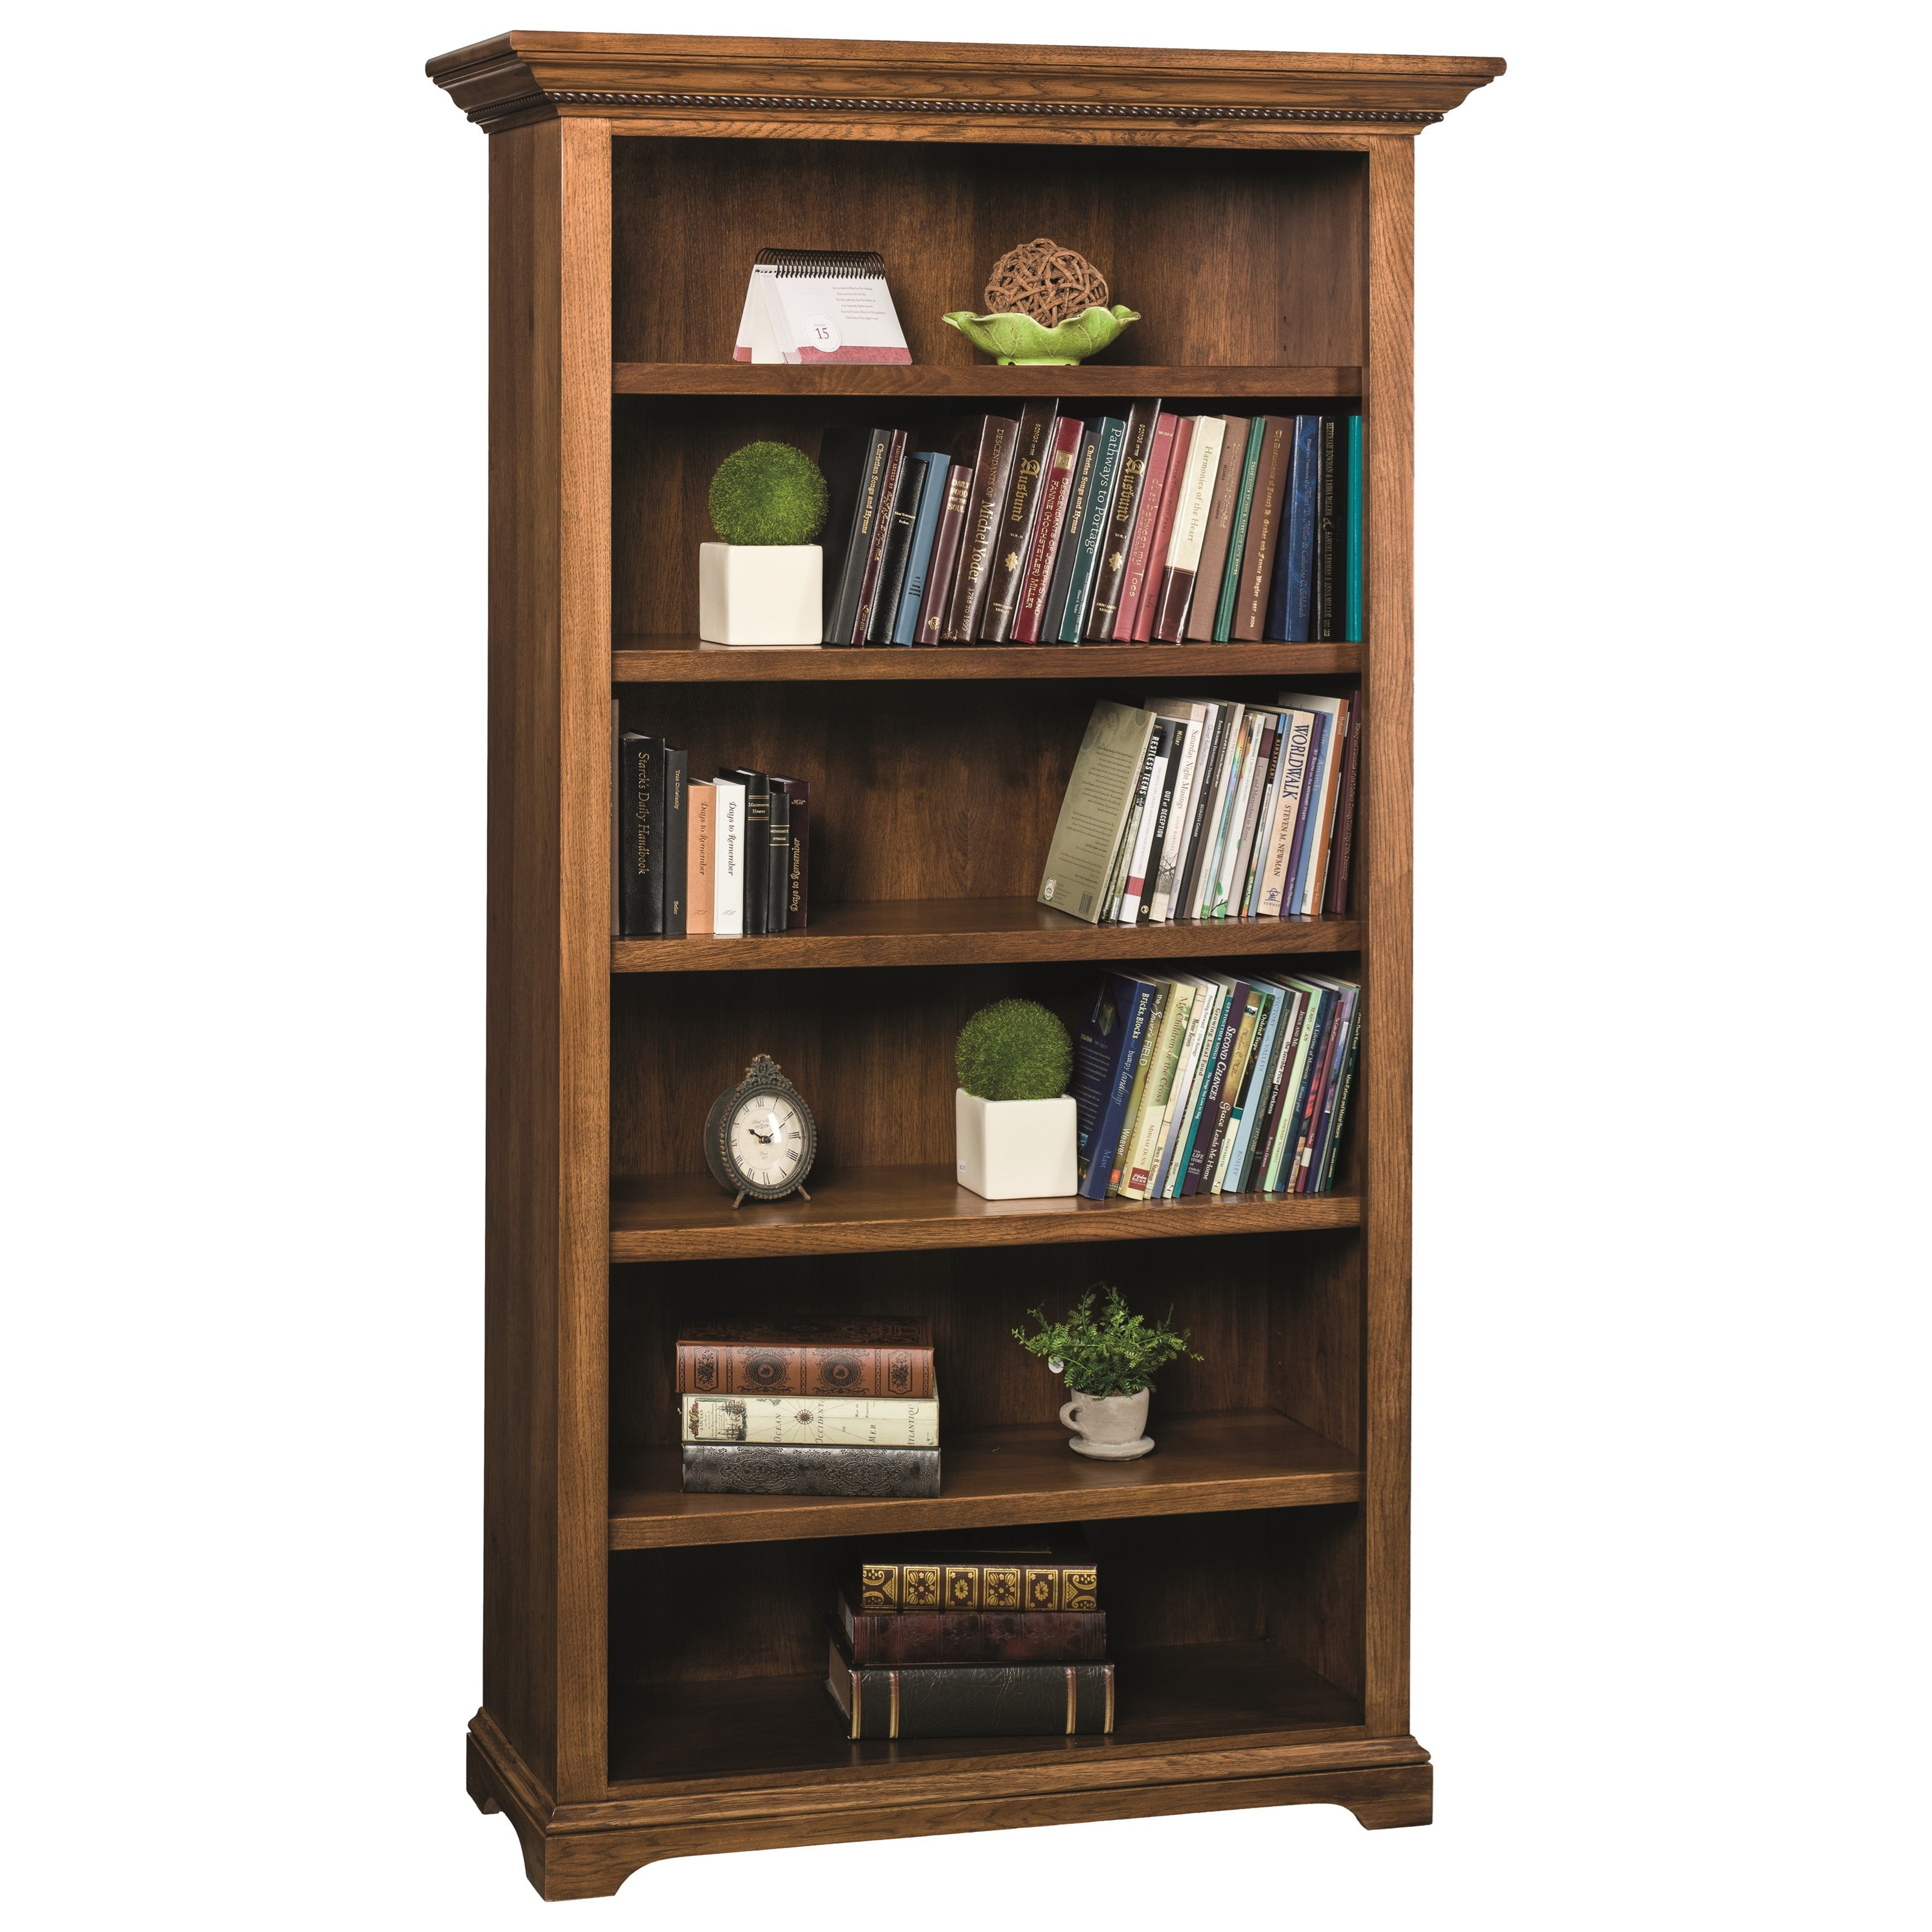 Wonder Wood Bookcases Customizable Plymouth Bookcase by Wonder Wood at Saugerties Furniture Mart